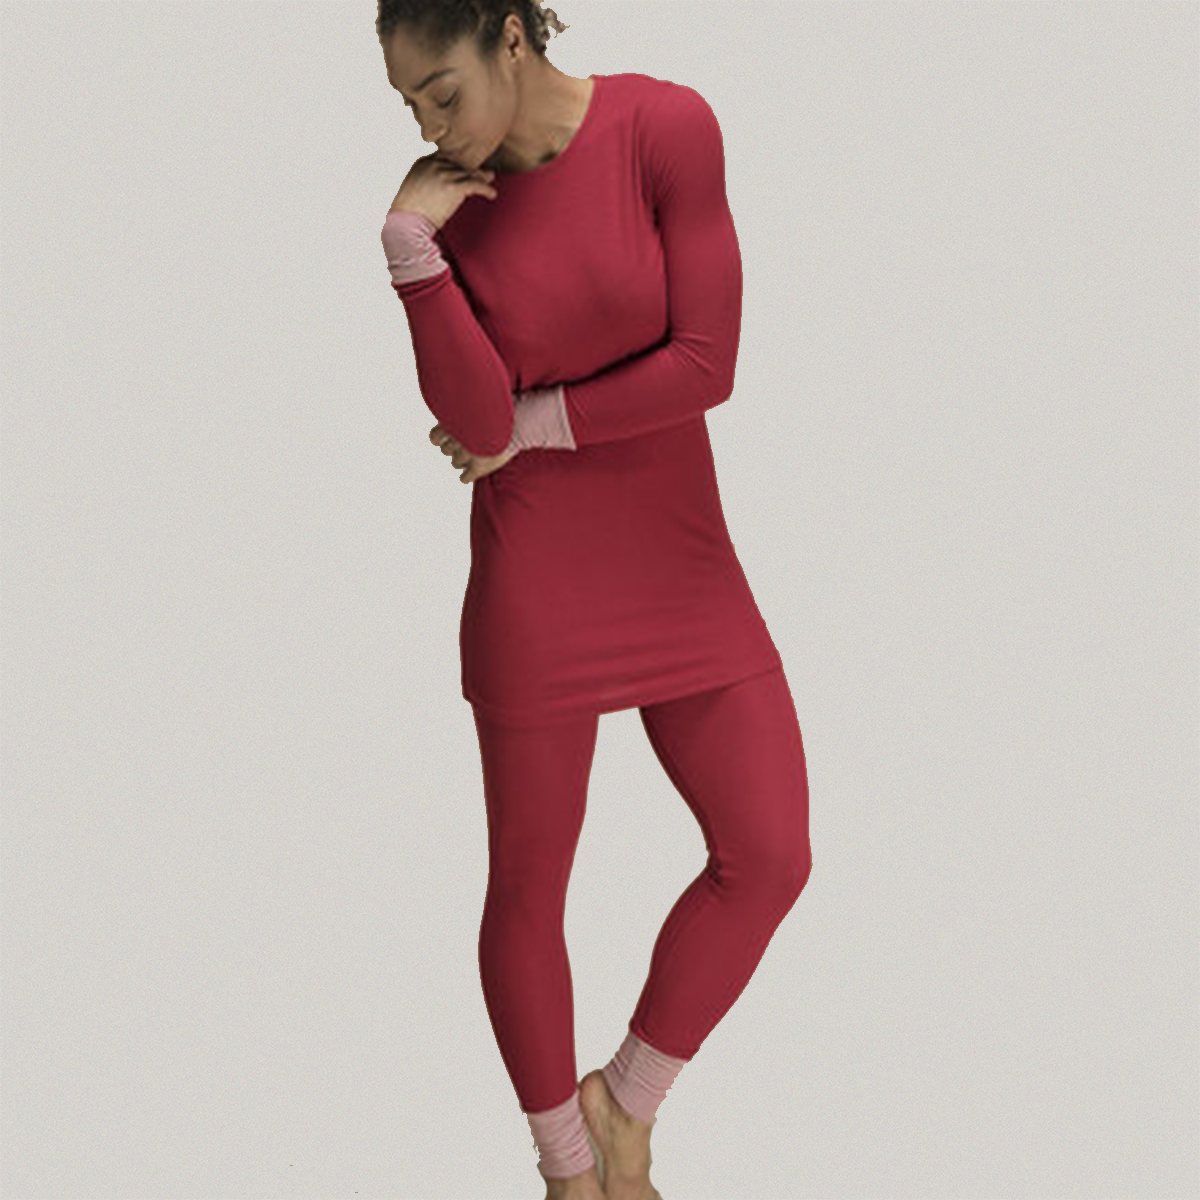 - Organic Bamboo Pajamasshiftboutique.comGive the gift of a cozy night's sleep with these super soft, eco, and ethically made pajamas from Shift Eco Boutique in Hyannis